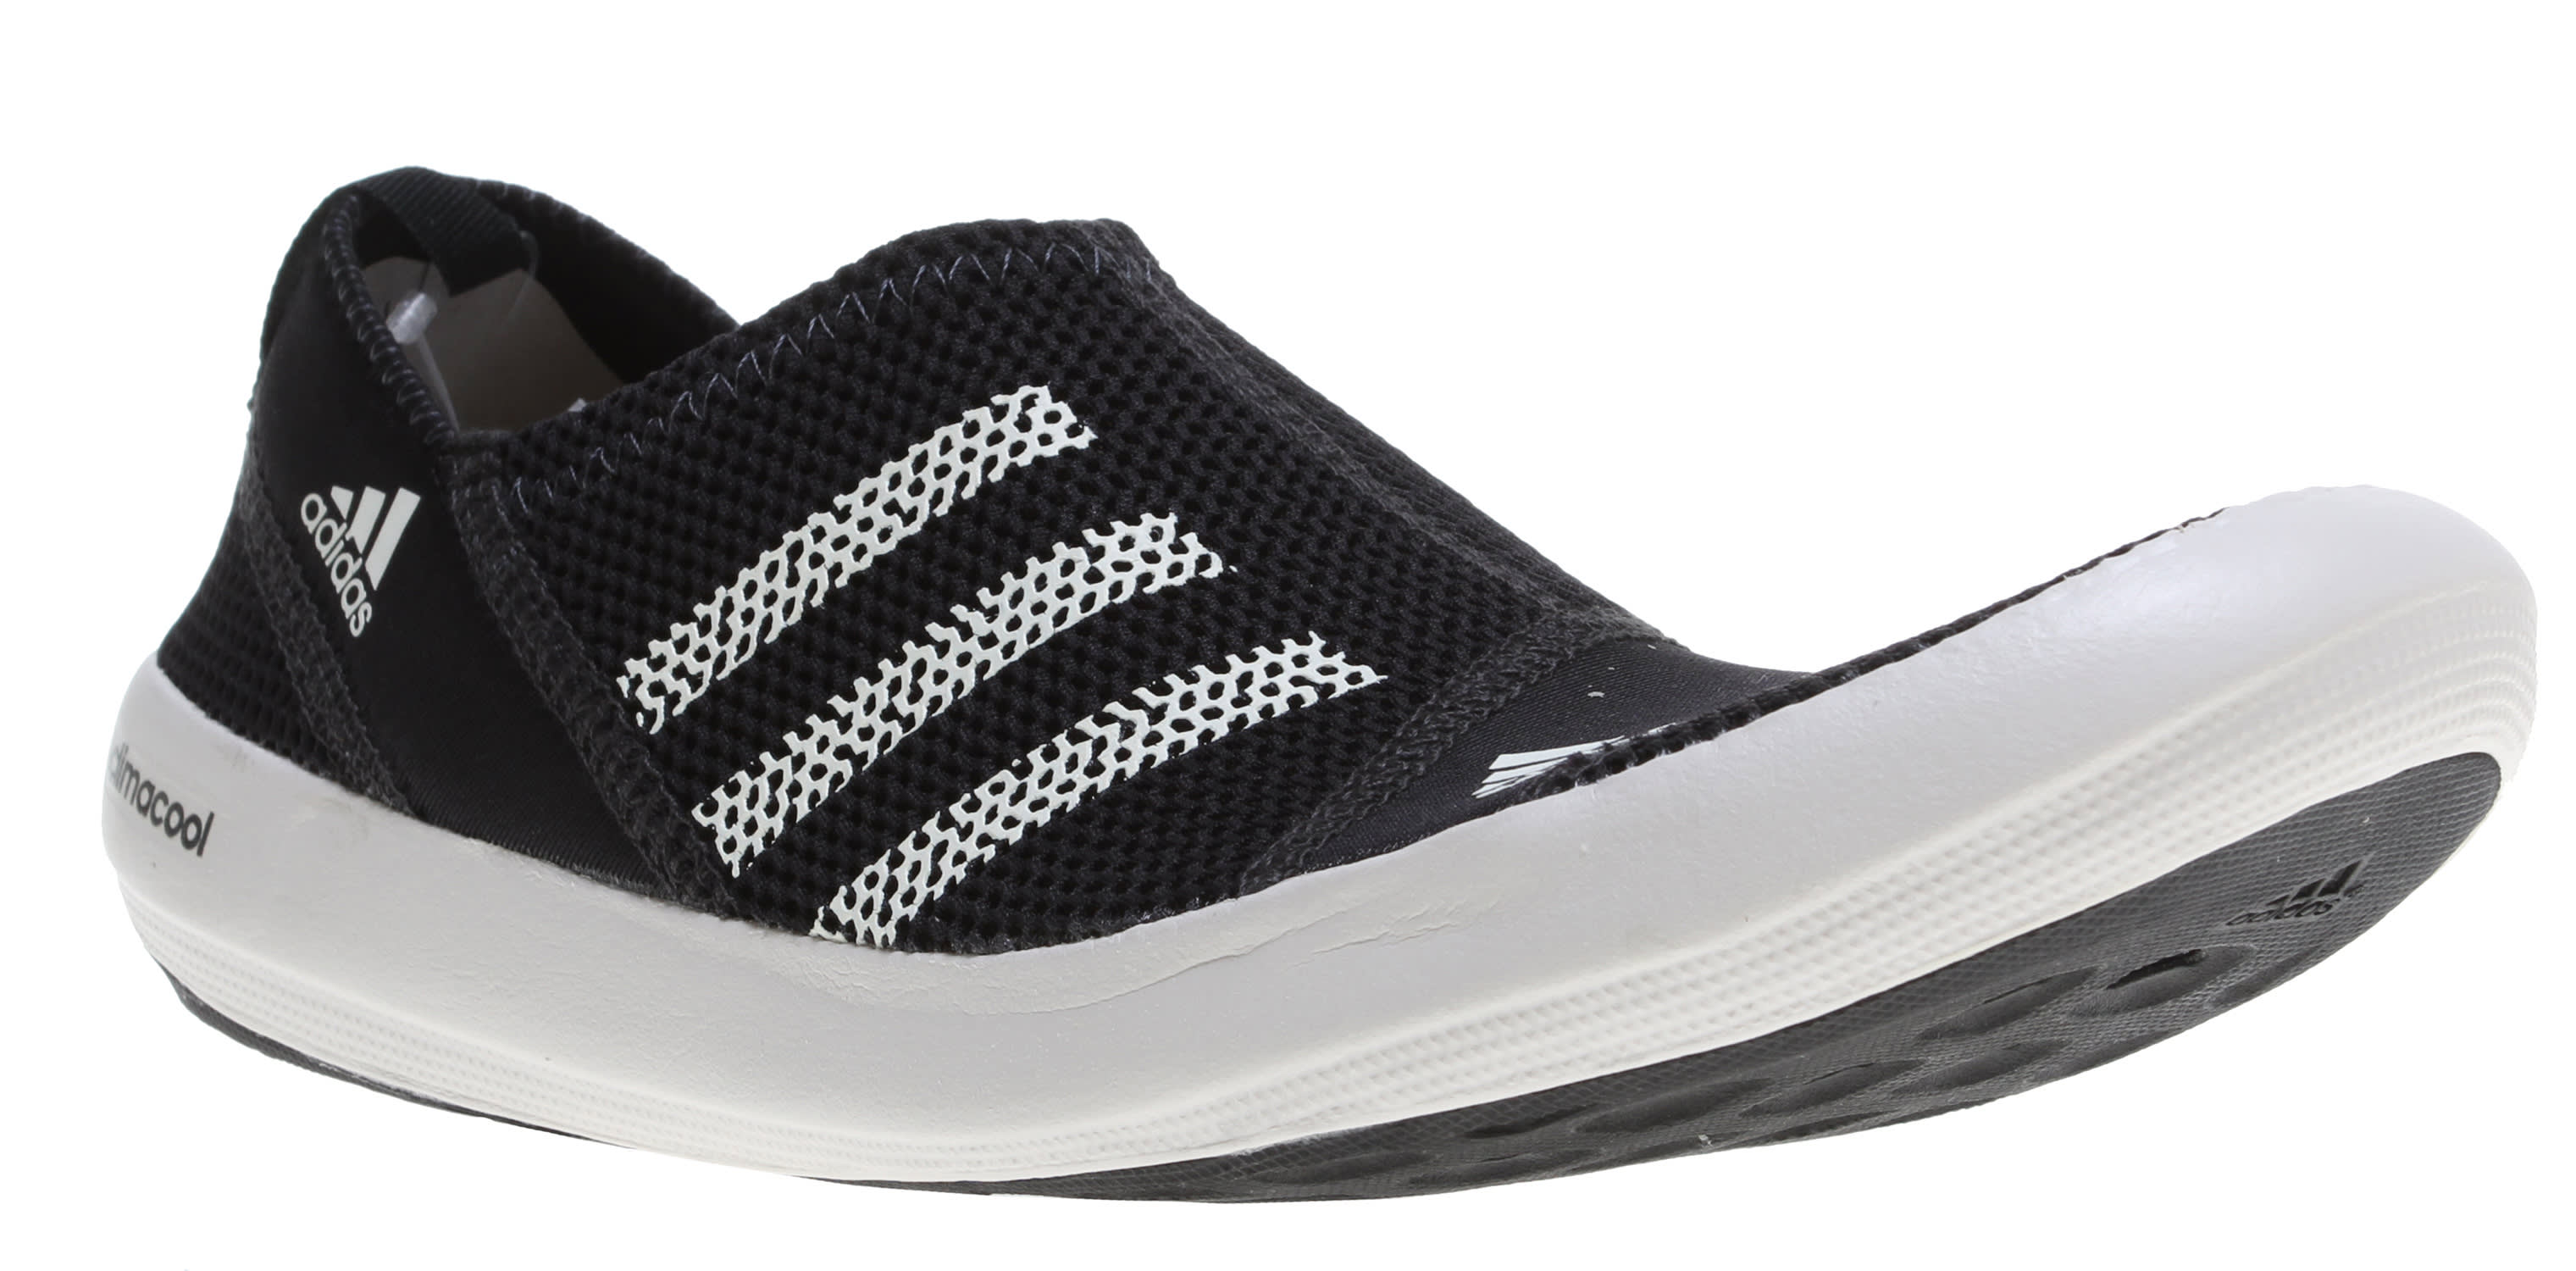 Adidas Boat Shoes Kids